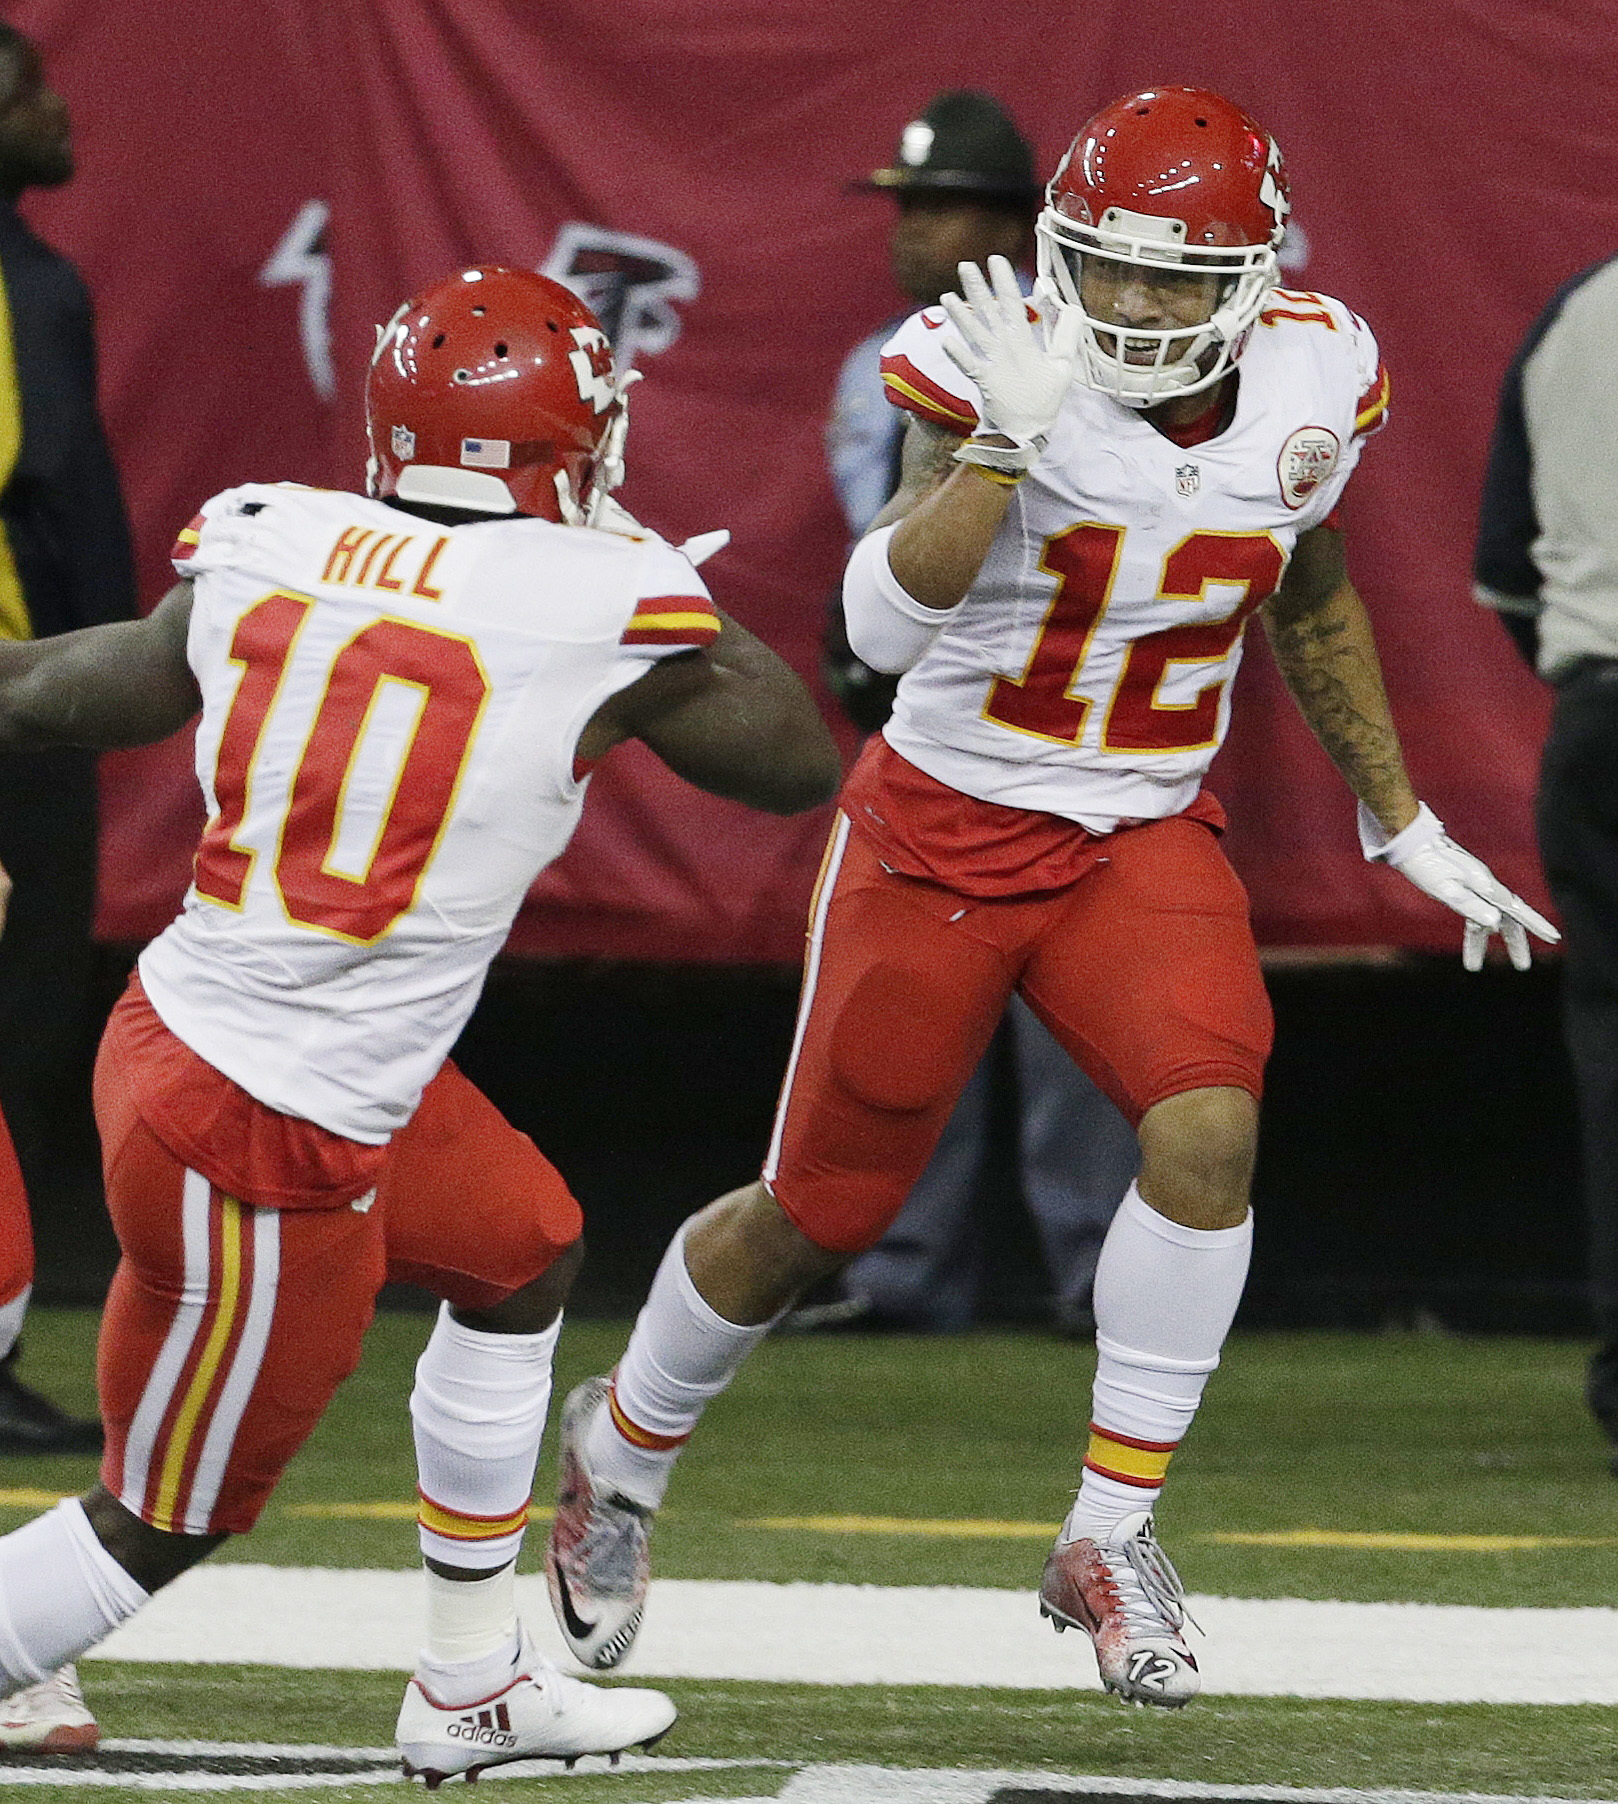 Kansas City Chiefs wide receiver Albert Wilson (12) celebrates his interception and touchdown with Kansas City Chiefs wide receiver Tyreek Hill (10) during the second half of an NFL football game against the Atlanta Falcons, Sunday, Dec. 4, 2016, in Atlan